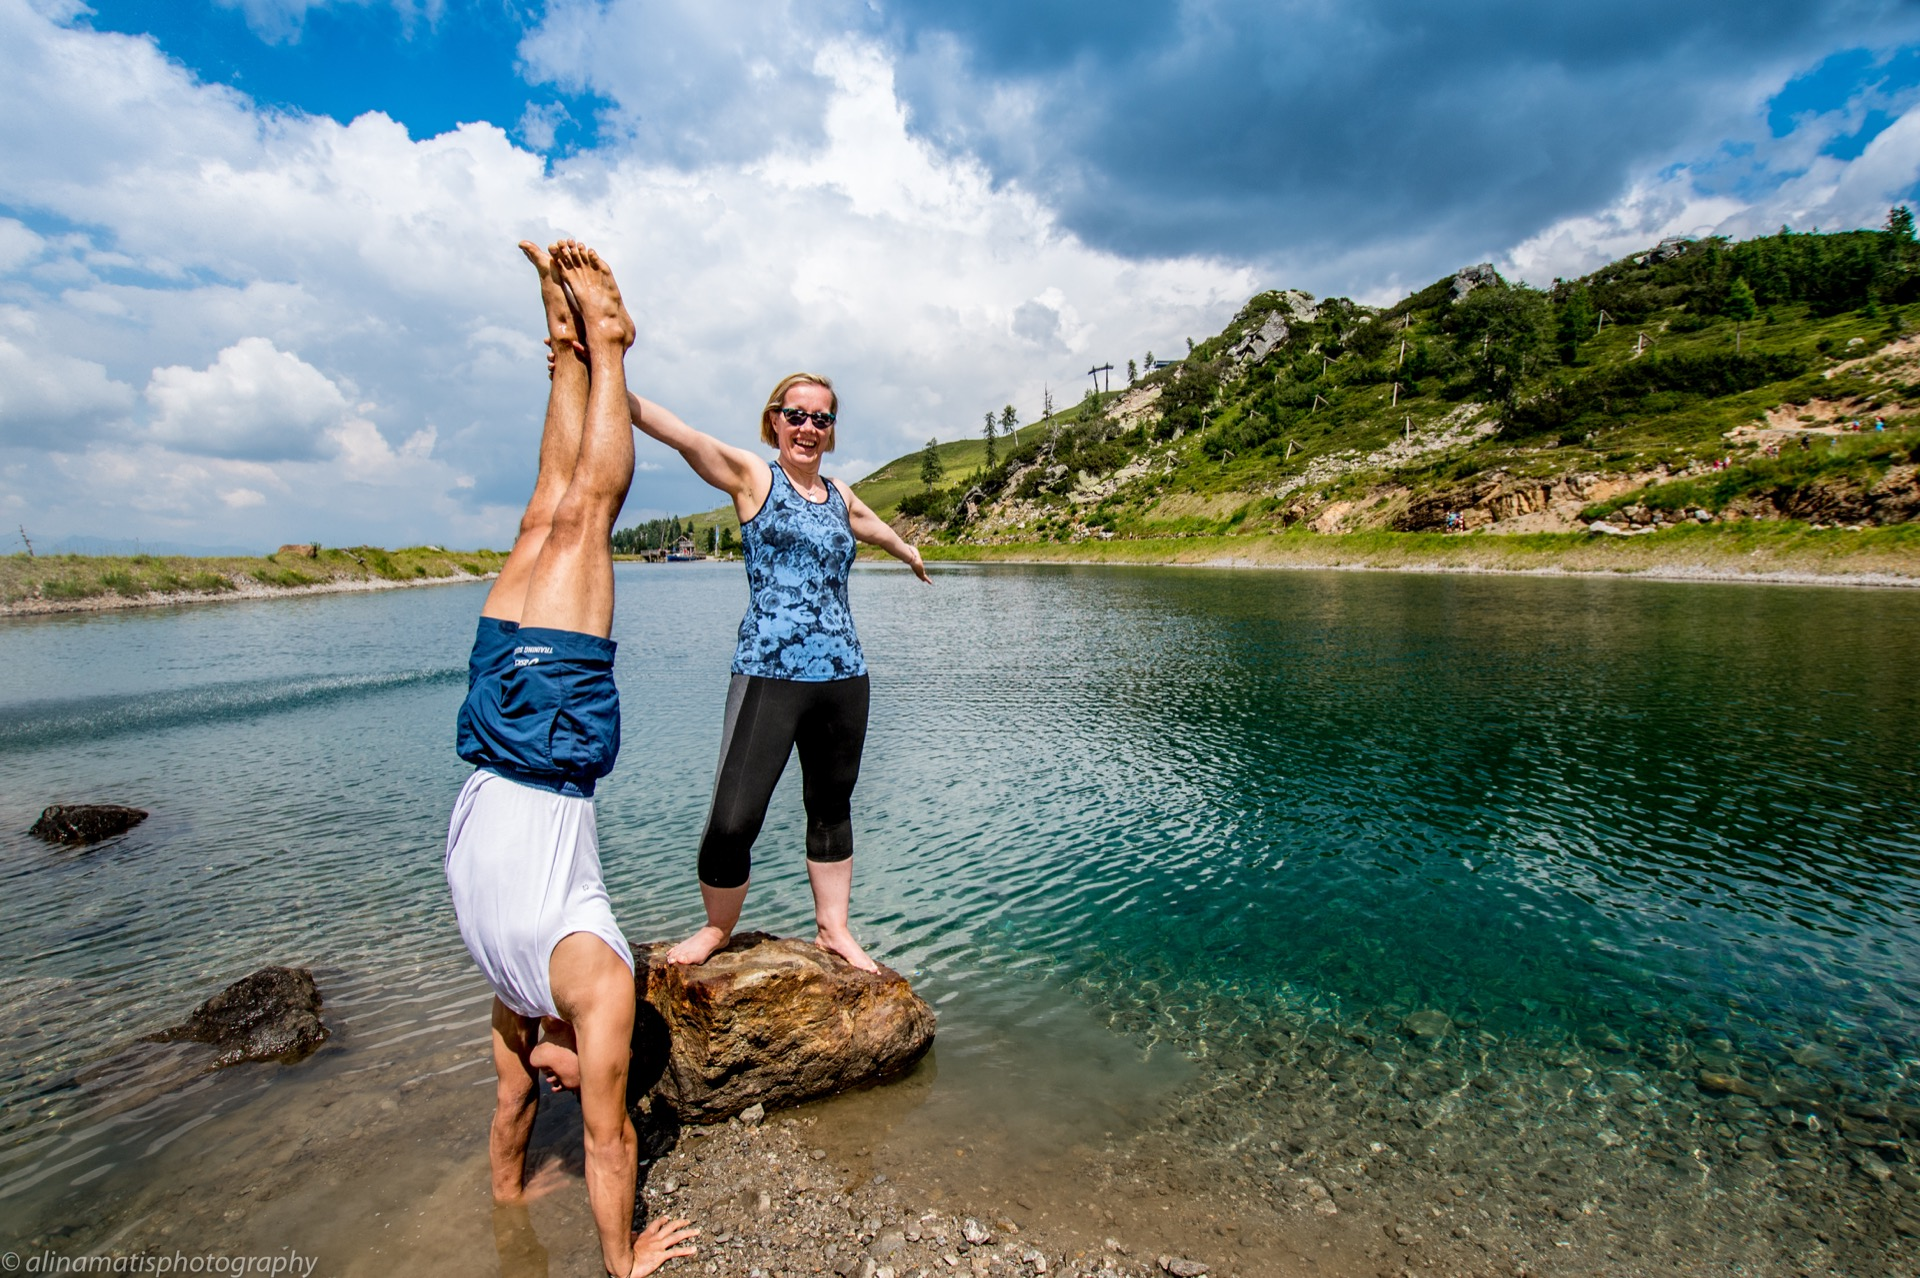 Hie-Kim-Friends-2018-Yoga-Retreat-Alina-Matis-Photography-155 - Hie Kim Yoga - Yoga Retreat - Yoga Workshops und Reisen